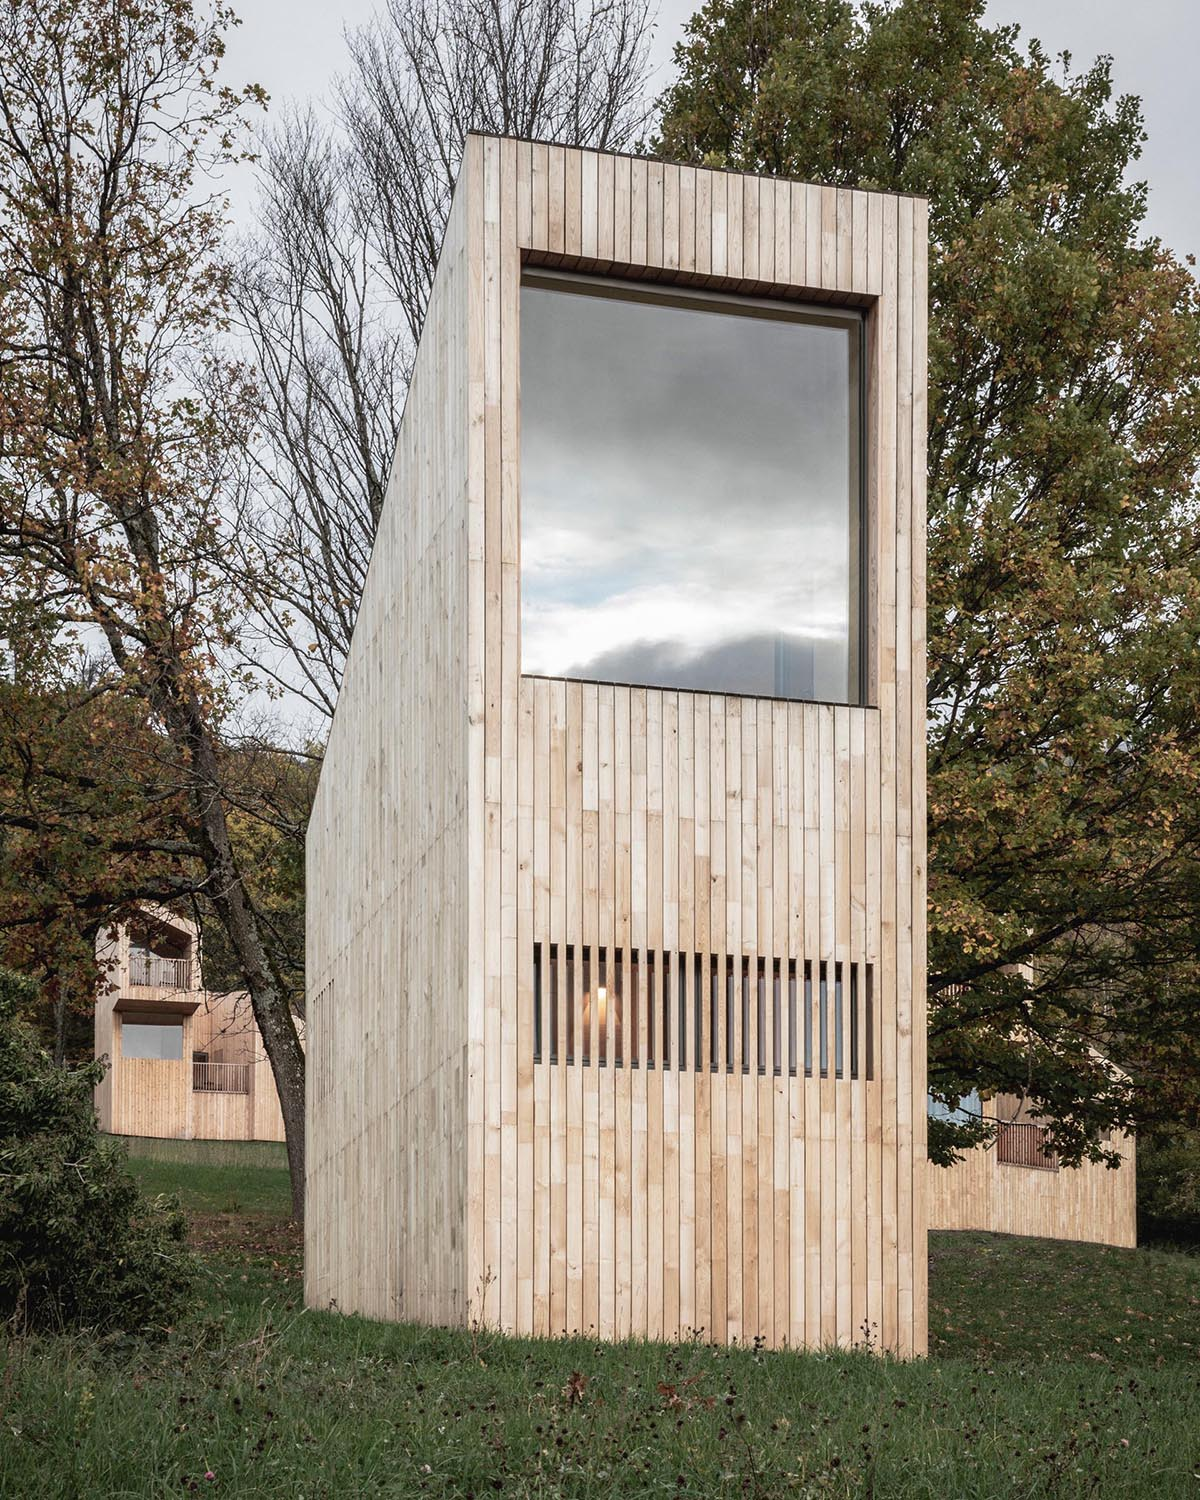 A collection of small wood cabins designed as part of a hotel in France.